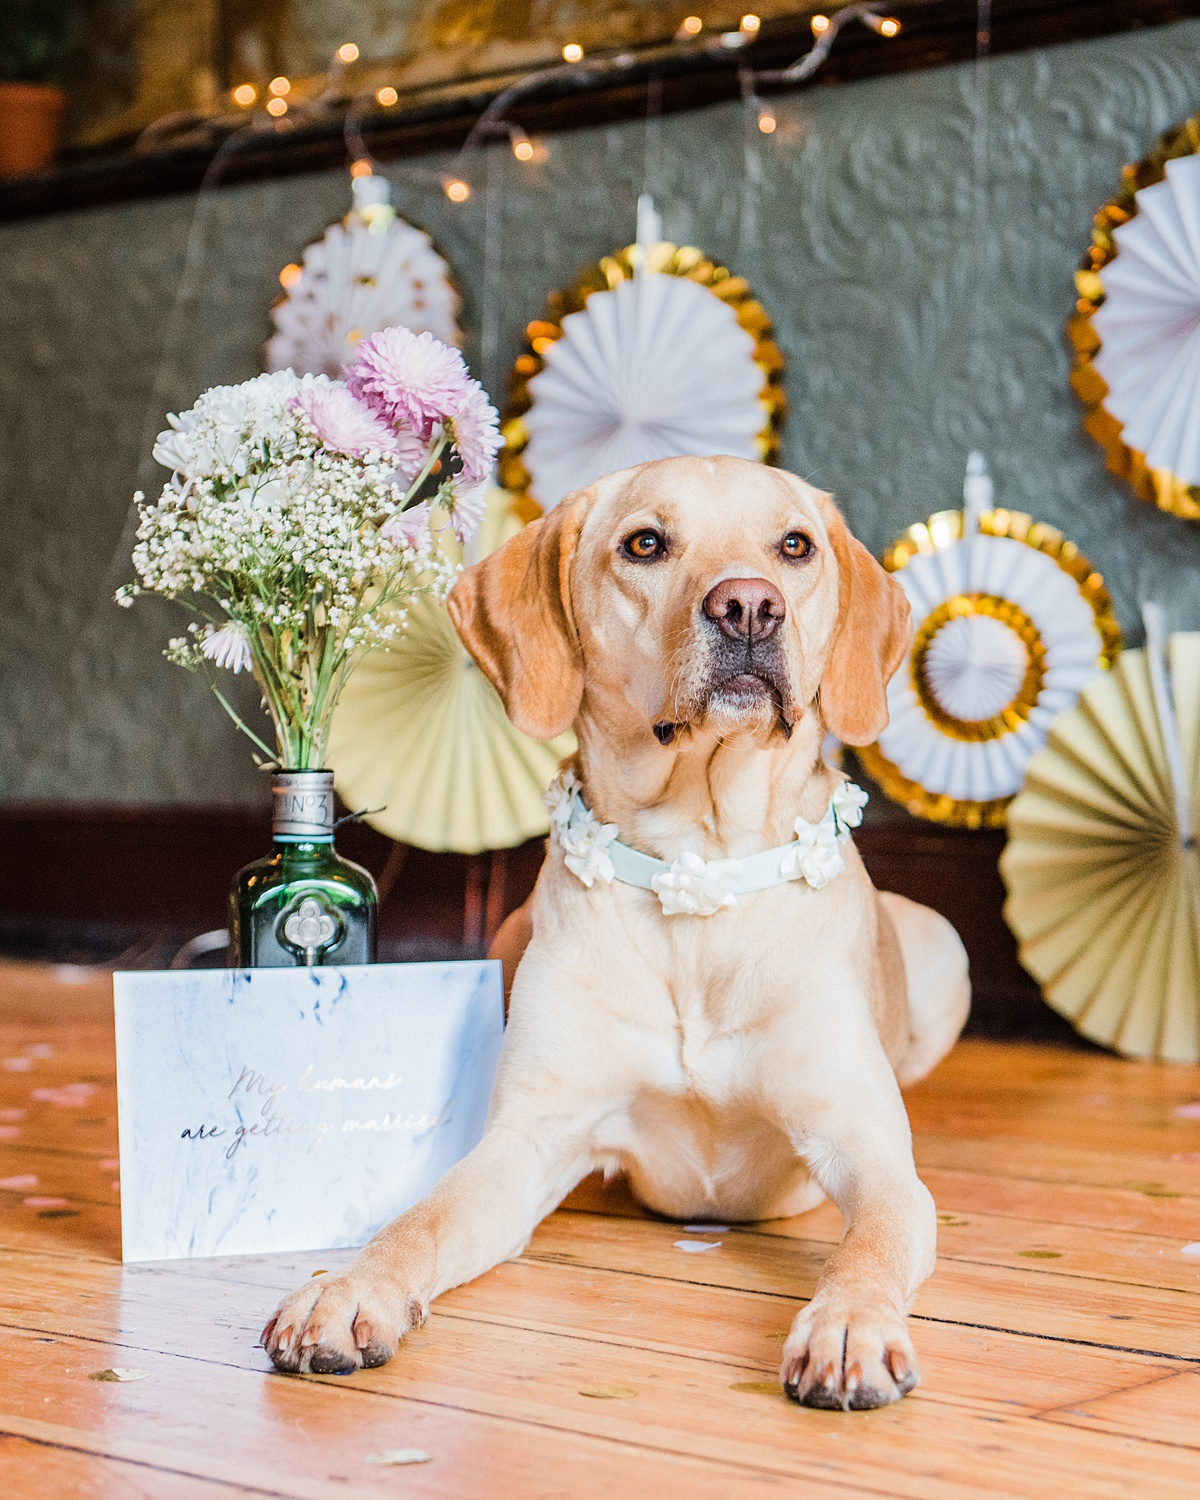 nala-with-wedding-stationary-dogs-wedding-style-parrot-and-pinapple